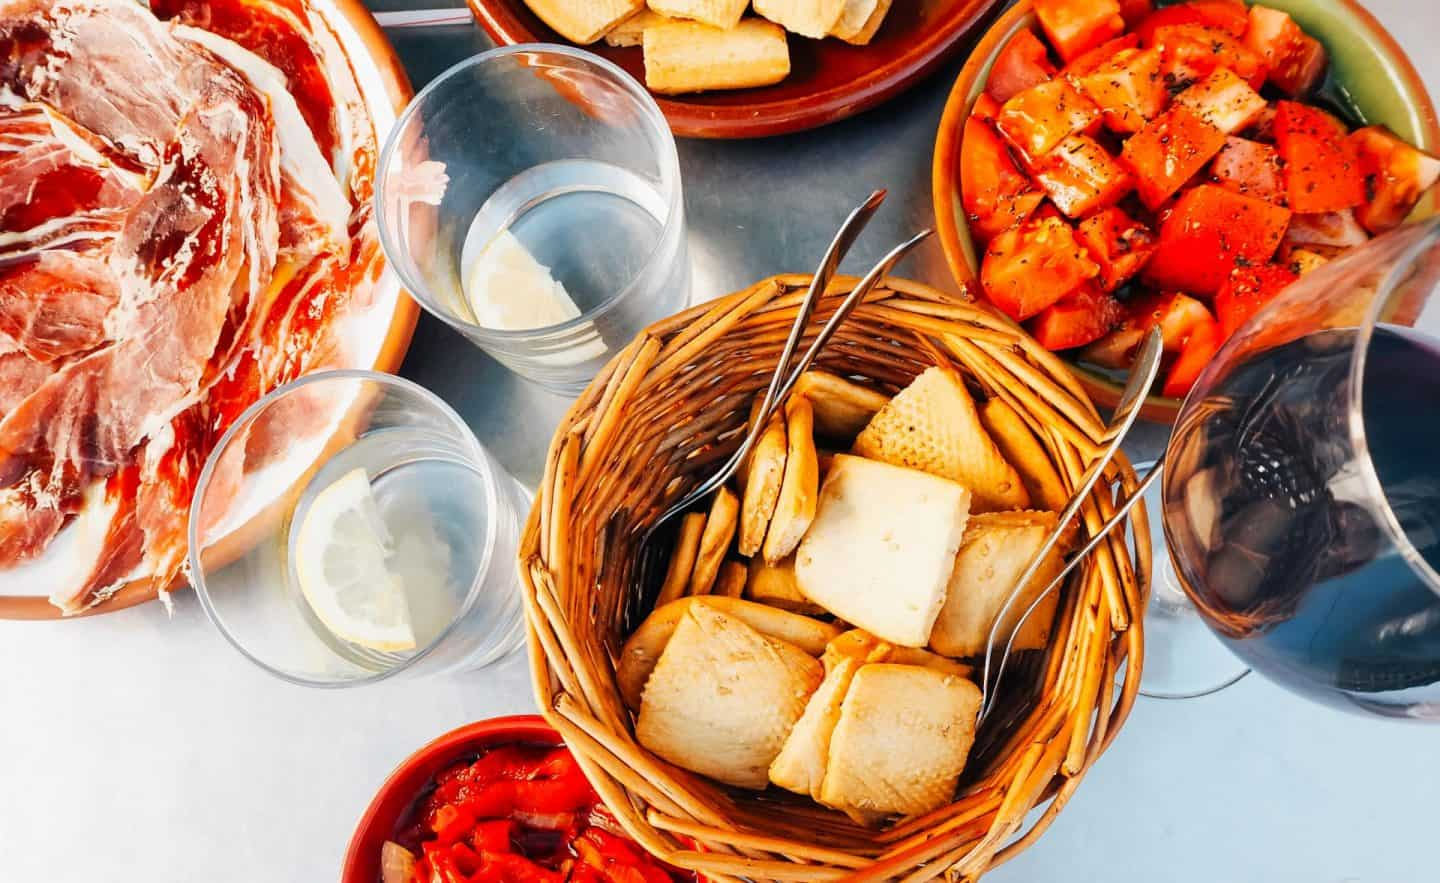 10 Unmissable Seville Food Experiences From Tapas To Local